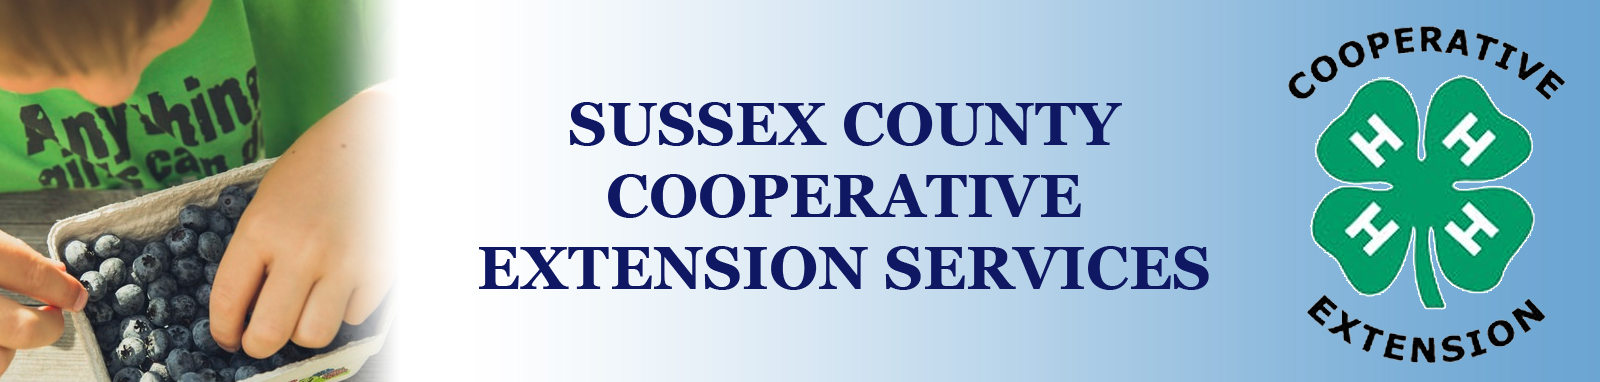 Cooperative Extension Services